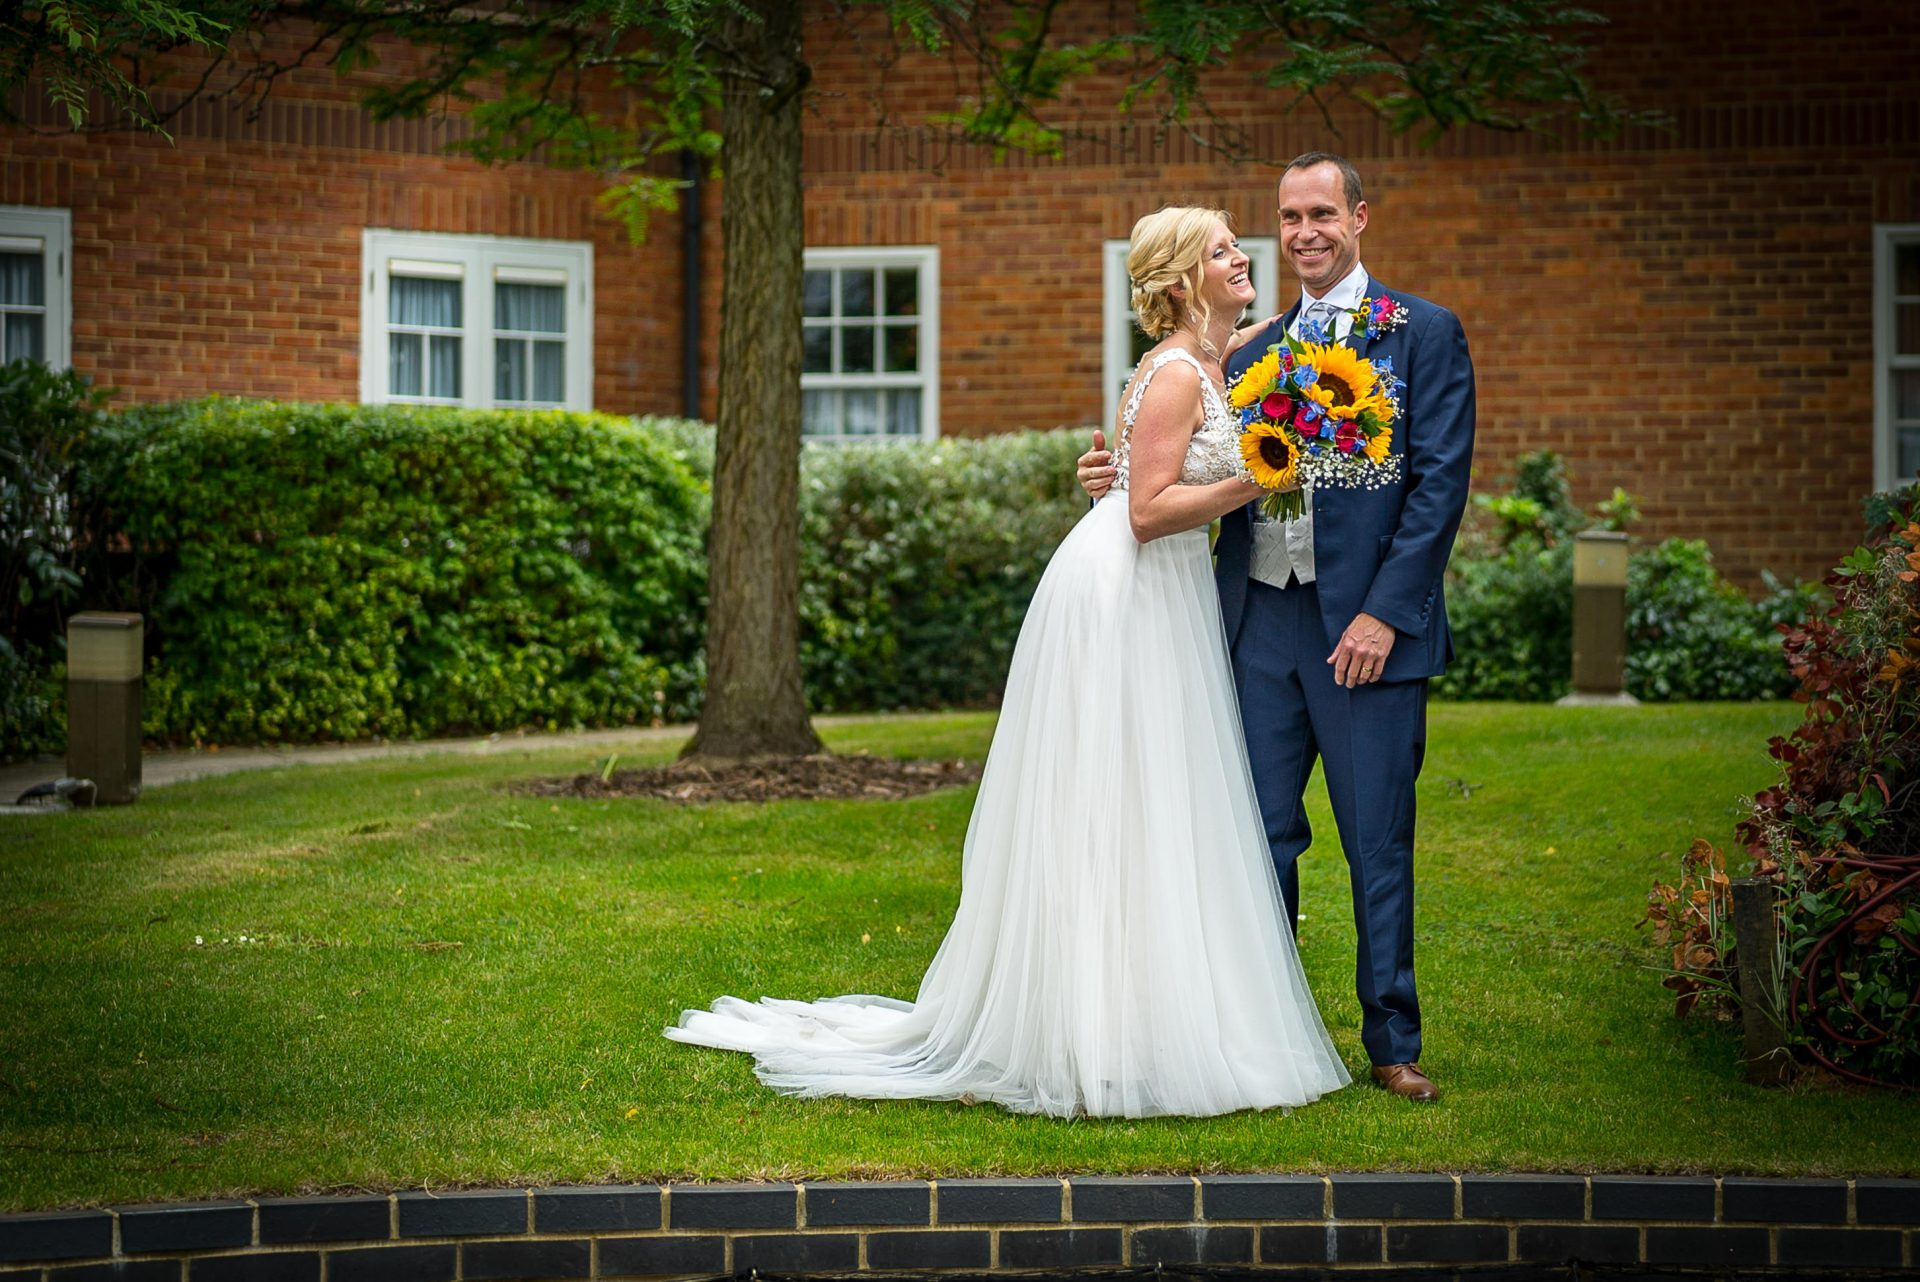 YFFUK Phil Endicott Murray Best Western Moore Place Hotel Aspley Guise newly married couple laughing on the grass courtyard